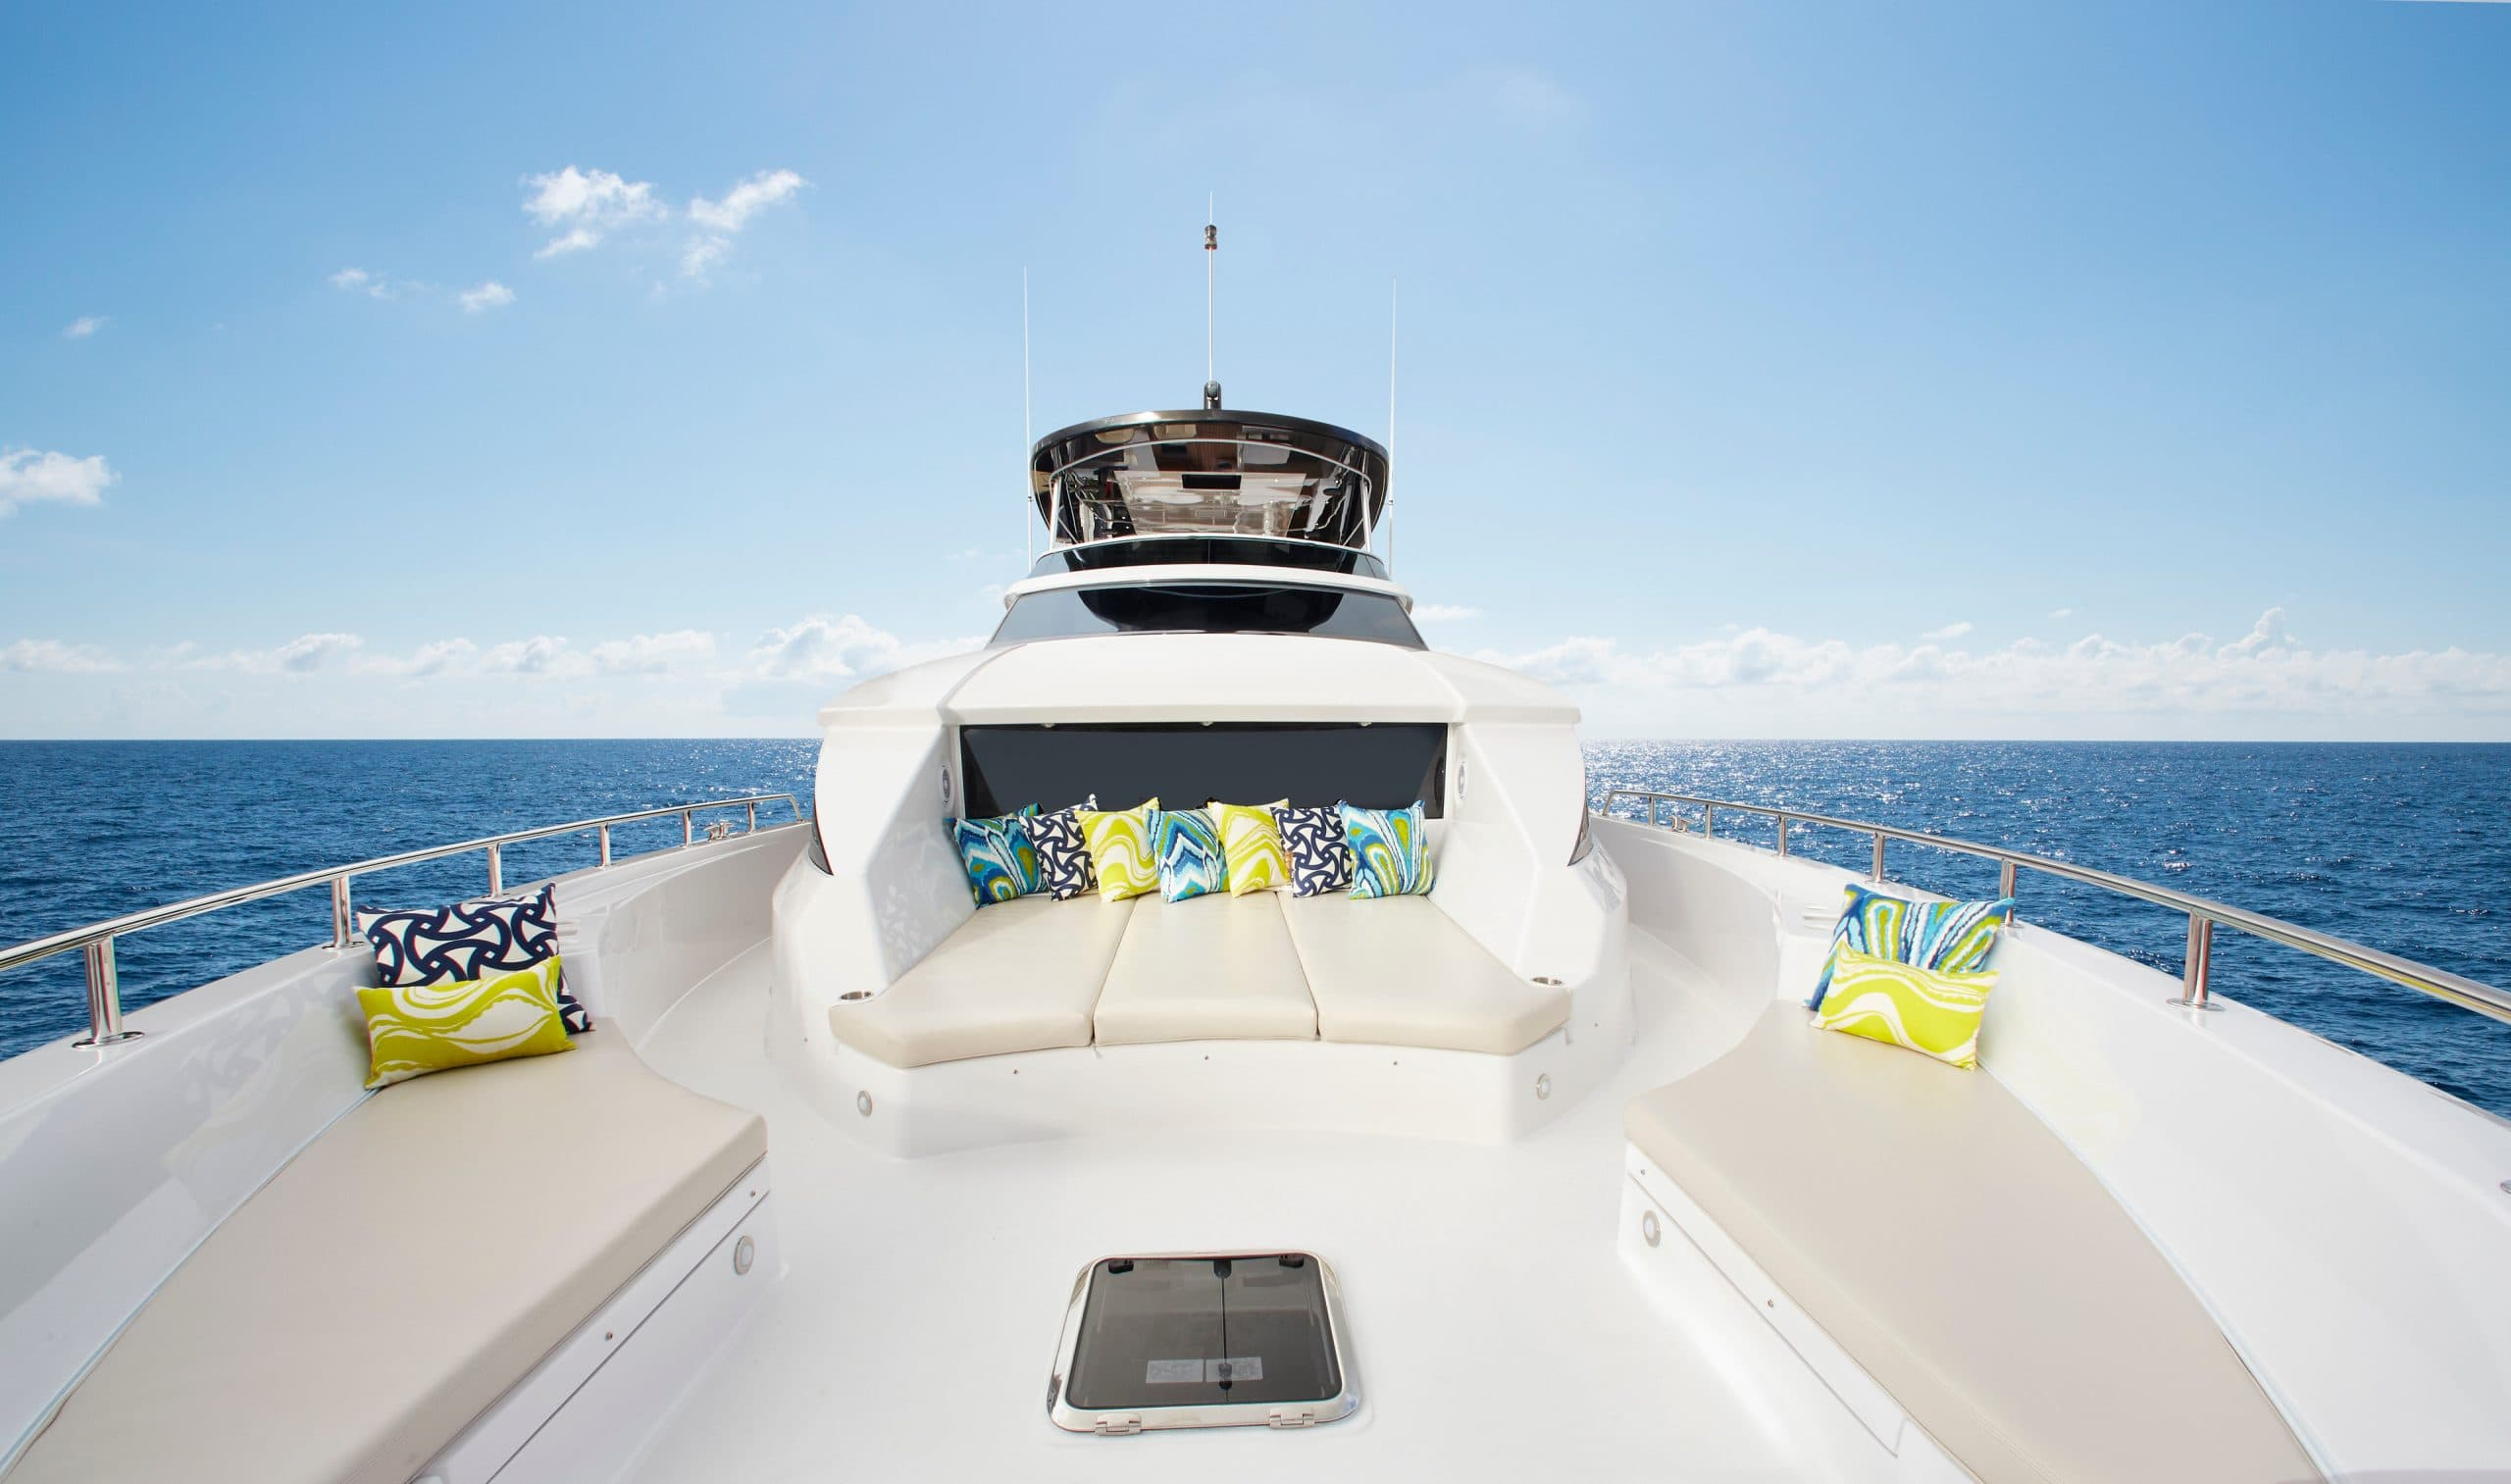 Hatteras M75 Panacera Bow Seating Area